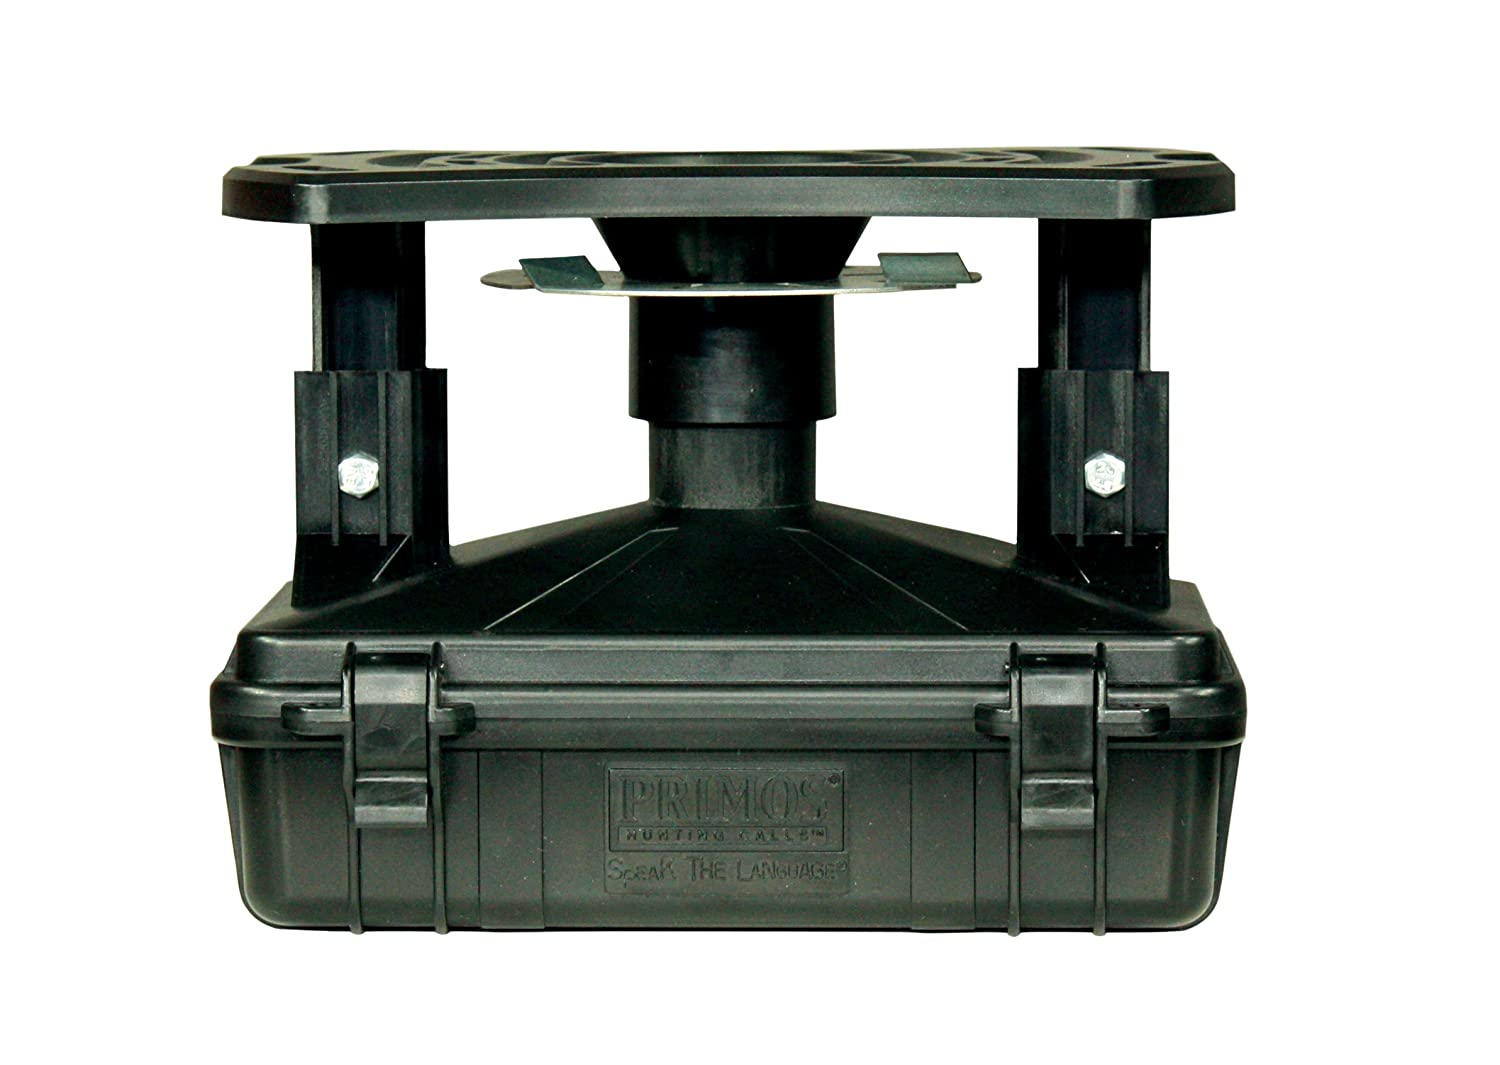 instructions american tripod hunter feeder pro reg gallons moultrie product mfg deer c